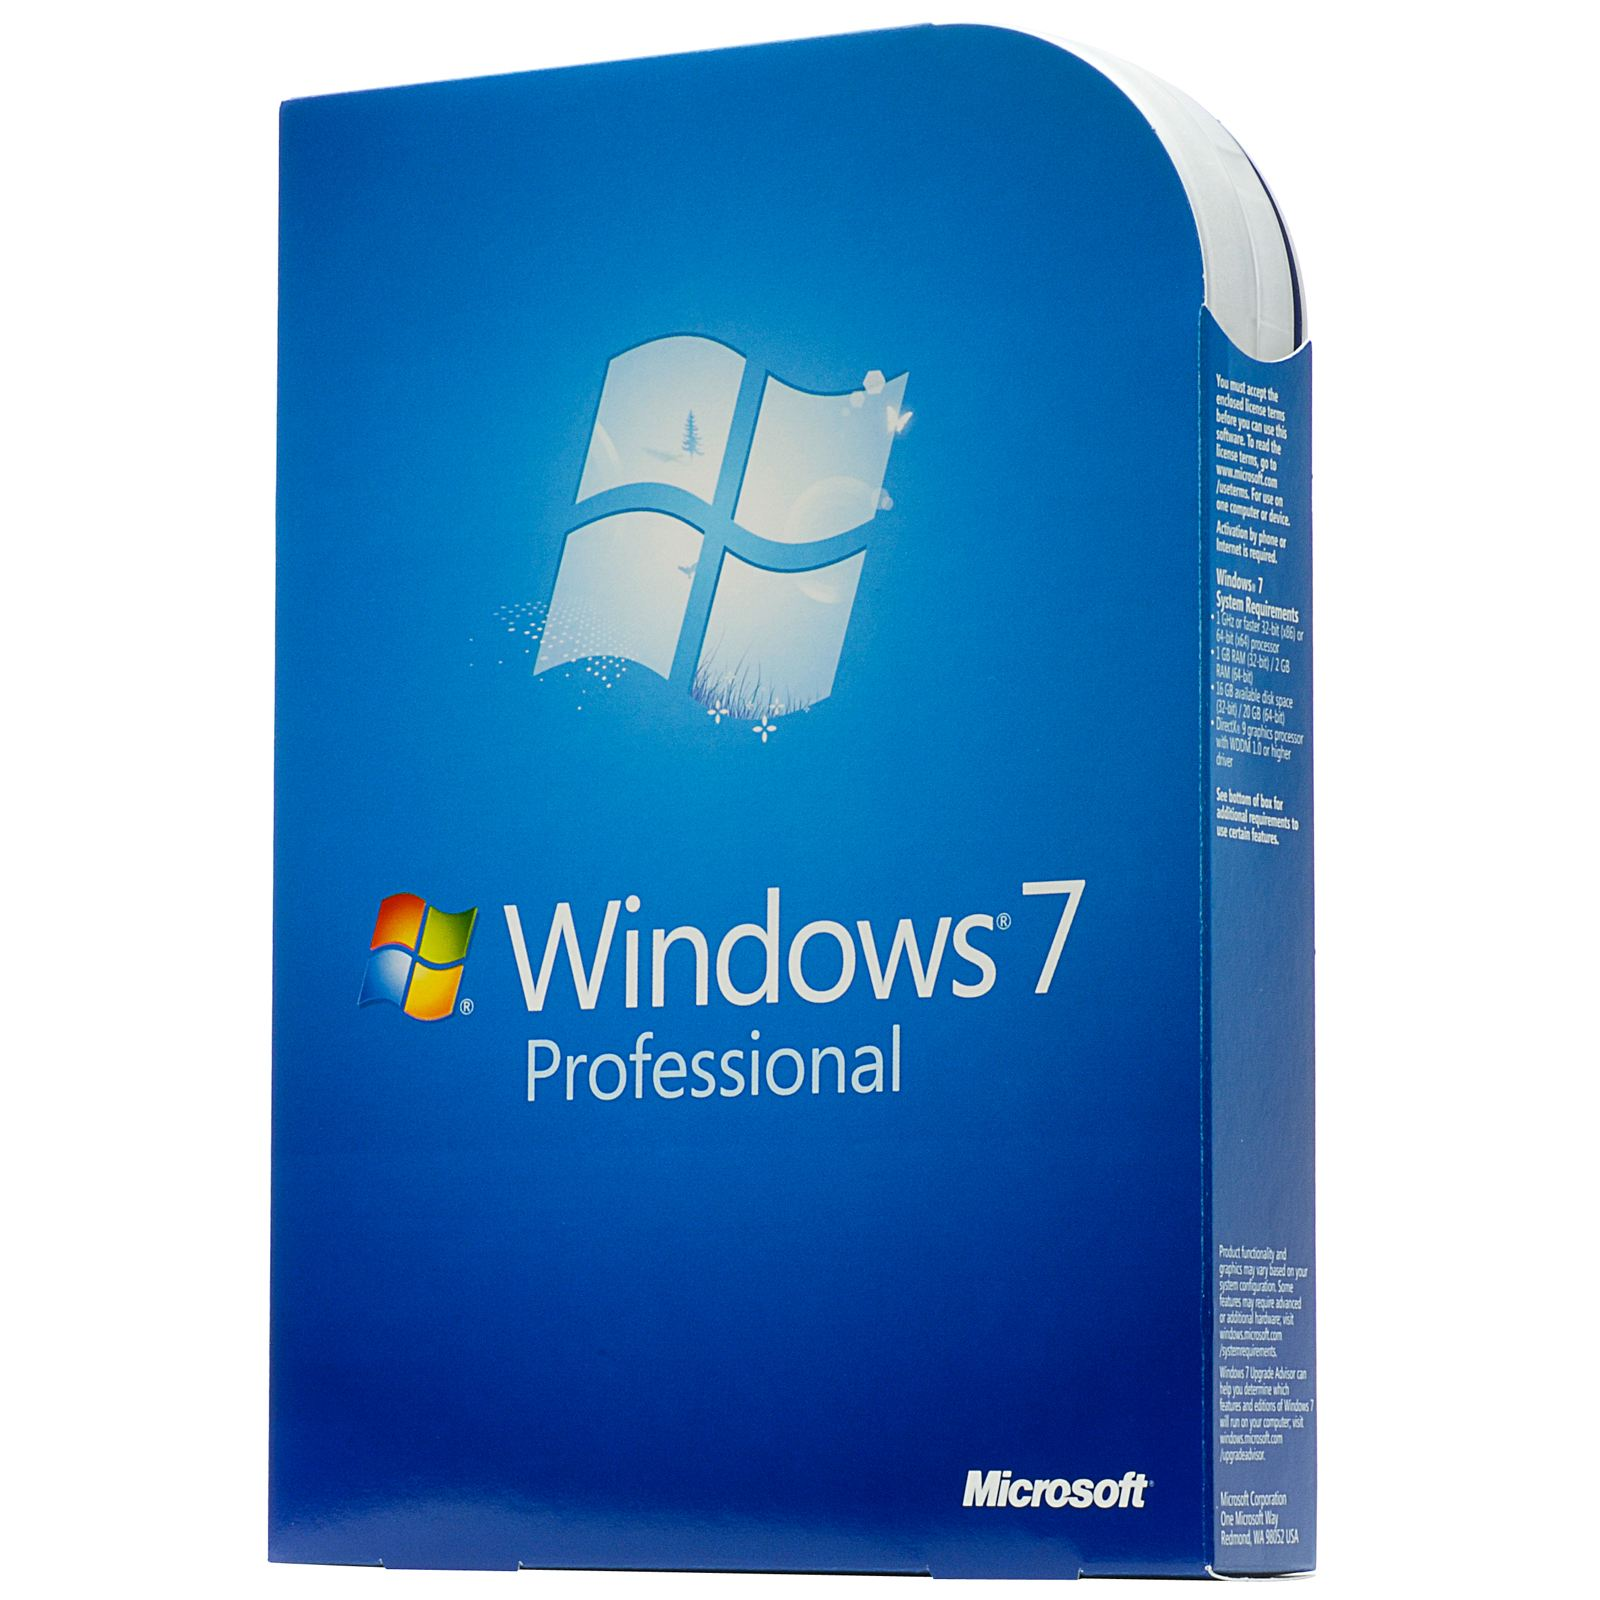 Windows 7 professional product key for 64 bit 32 bit for Windows products